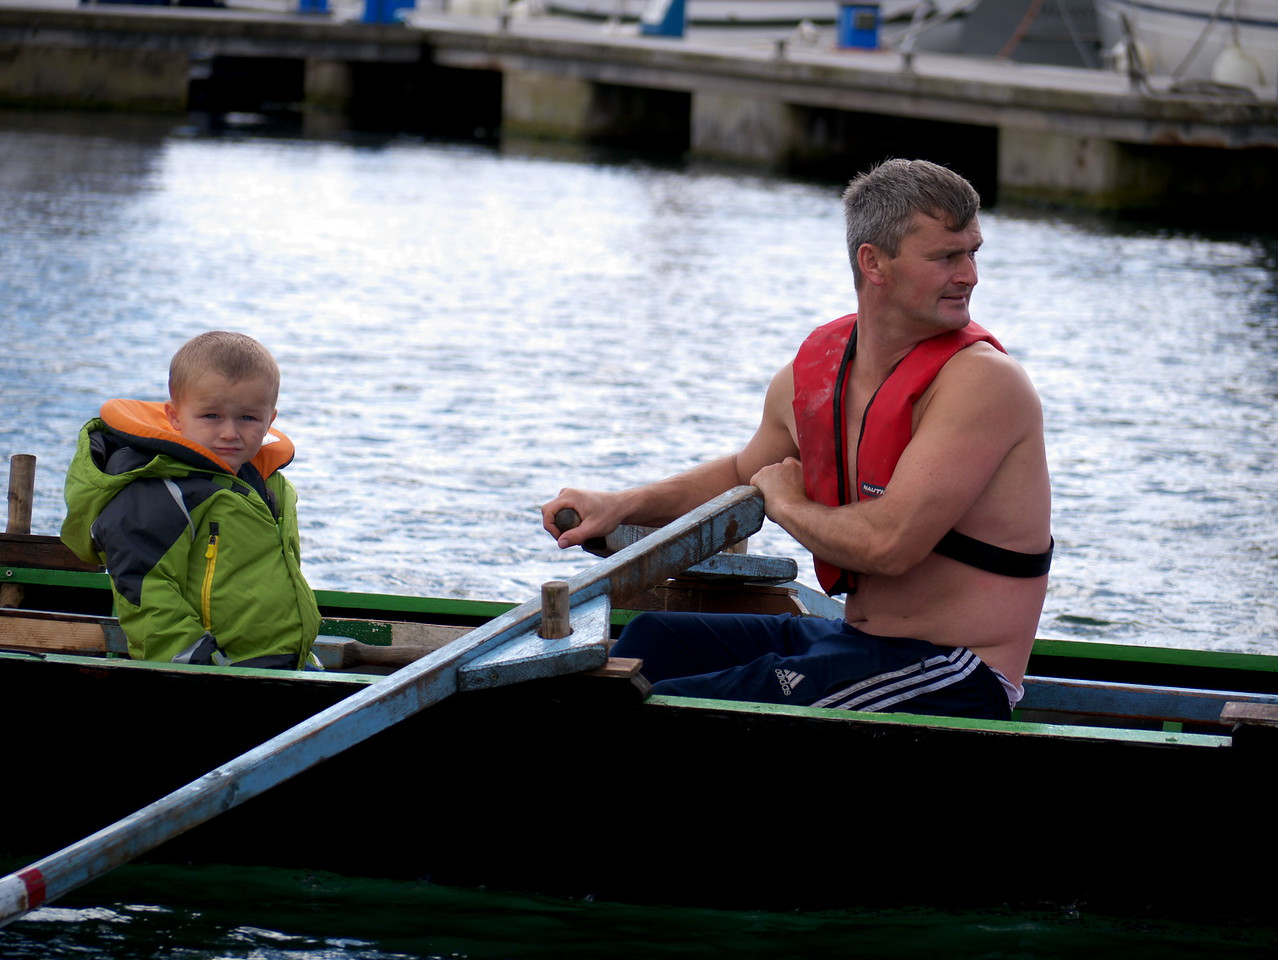 "August 15th 2011 'Father and son at the Dingle Regatta ' I love the look on the kid's face... amazingly we had nice weather here in Dingle yesterday.<br /> The Regatta is an annual celebration of the skill and expertise of the boat men & women from Chorca Dhuibhne operating the Four-Hand Namhóg in Dingle Harbour. <br /> You can see more photographs here<br /> <a href=""http://dinglepeninsula.smugmug.com/Dingle-Peninsula/Dingle-Regatta-2011/18532322_c79dj8"">http://dinglepeninsula.smugmug.com/Dingle-Peninsula/Dingle-Regatta-2011/18532322_c79dj8</a>"